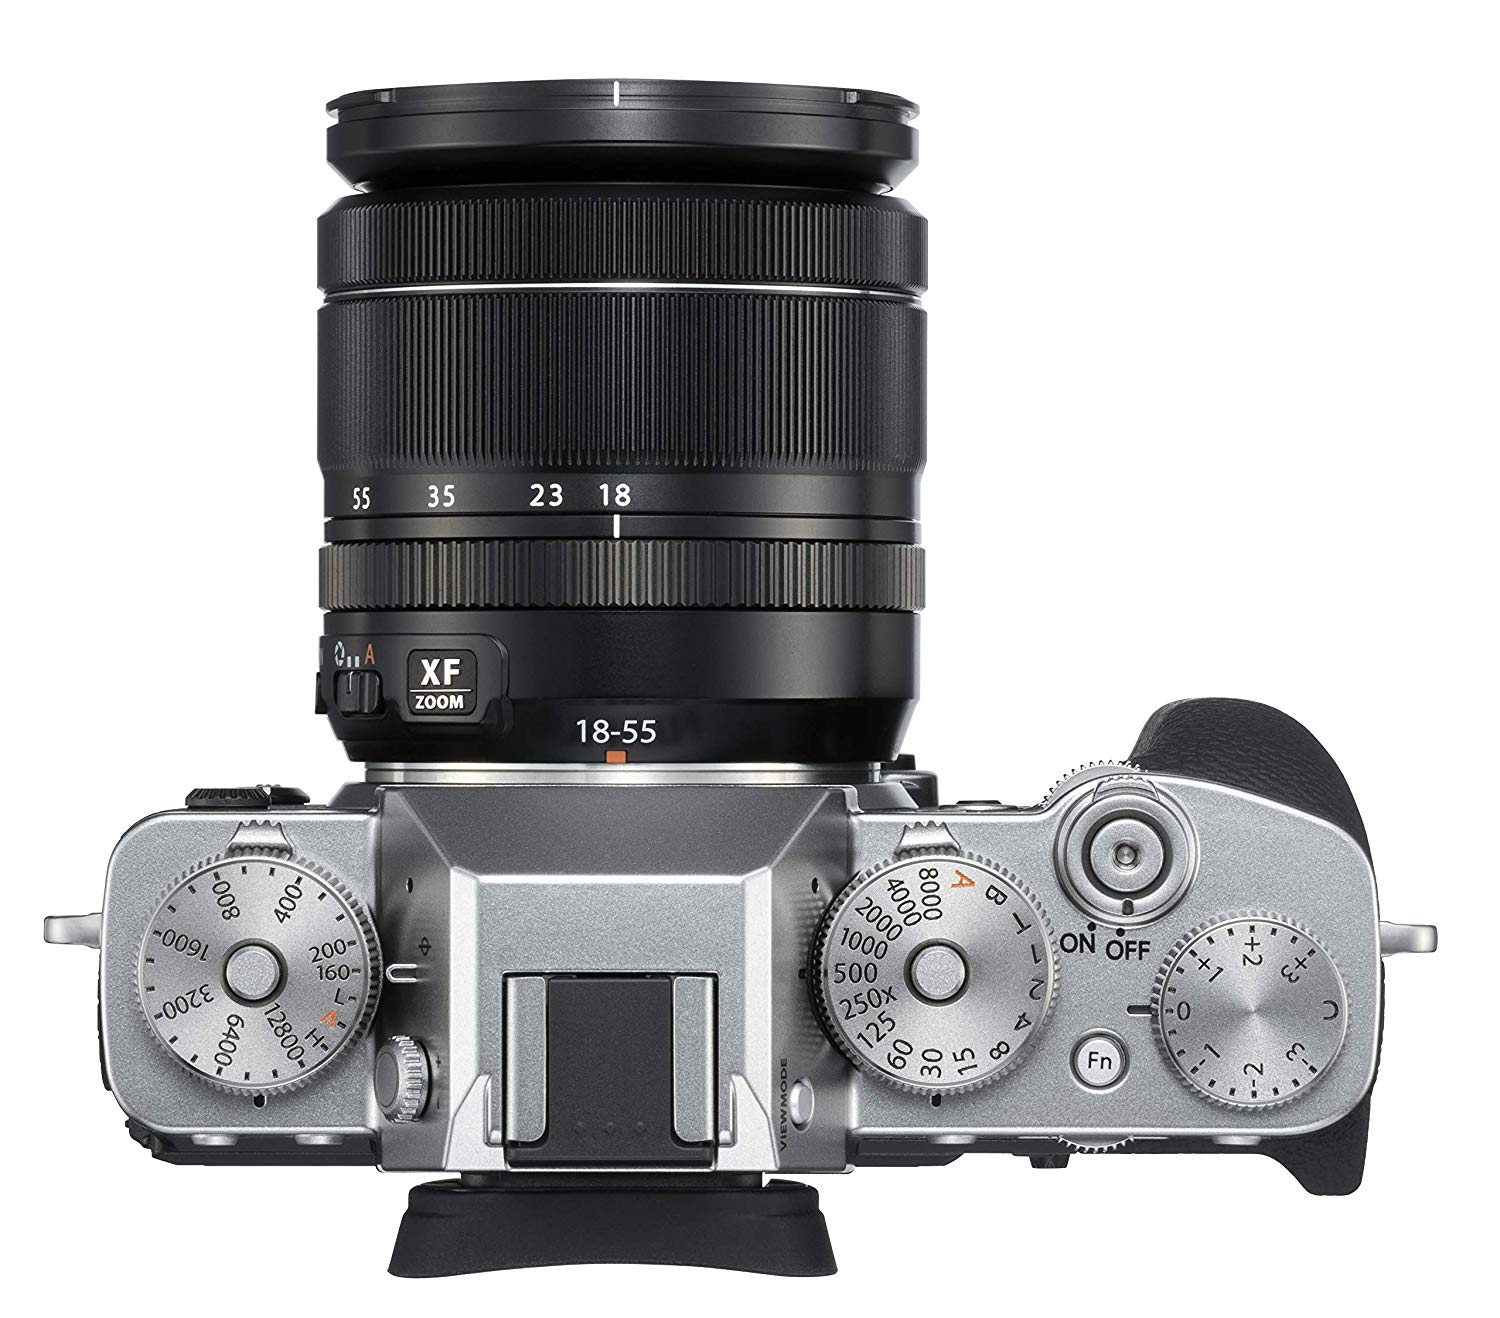 Fujifilm X-T3 Mirrorless Digital Camera w/XF18-55mm Lens Kit - Silver